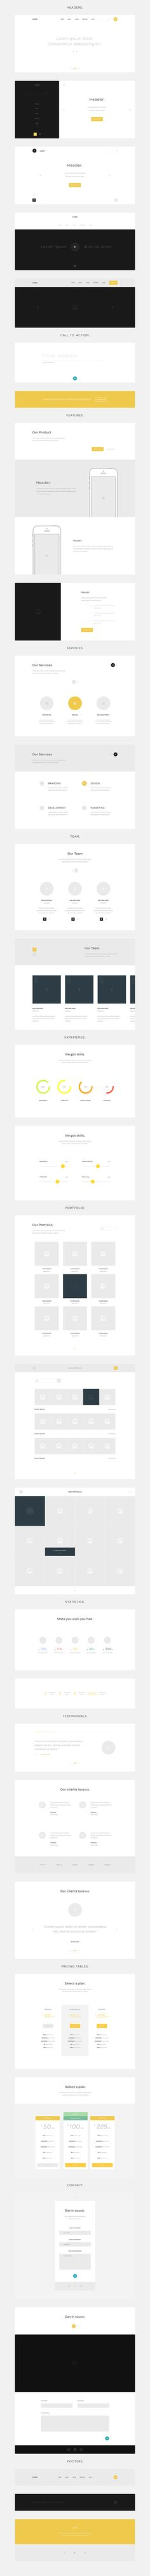 This freebie was created with the intention of helping designers quickly prototype an idea before actually digging...